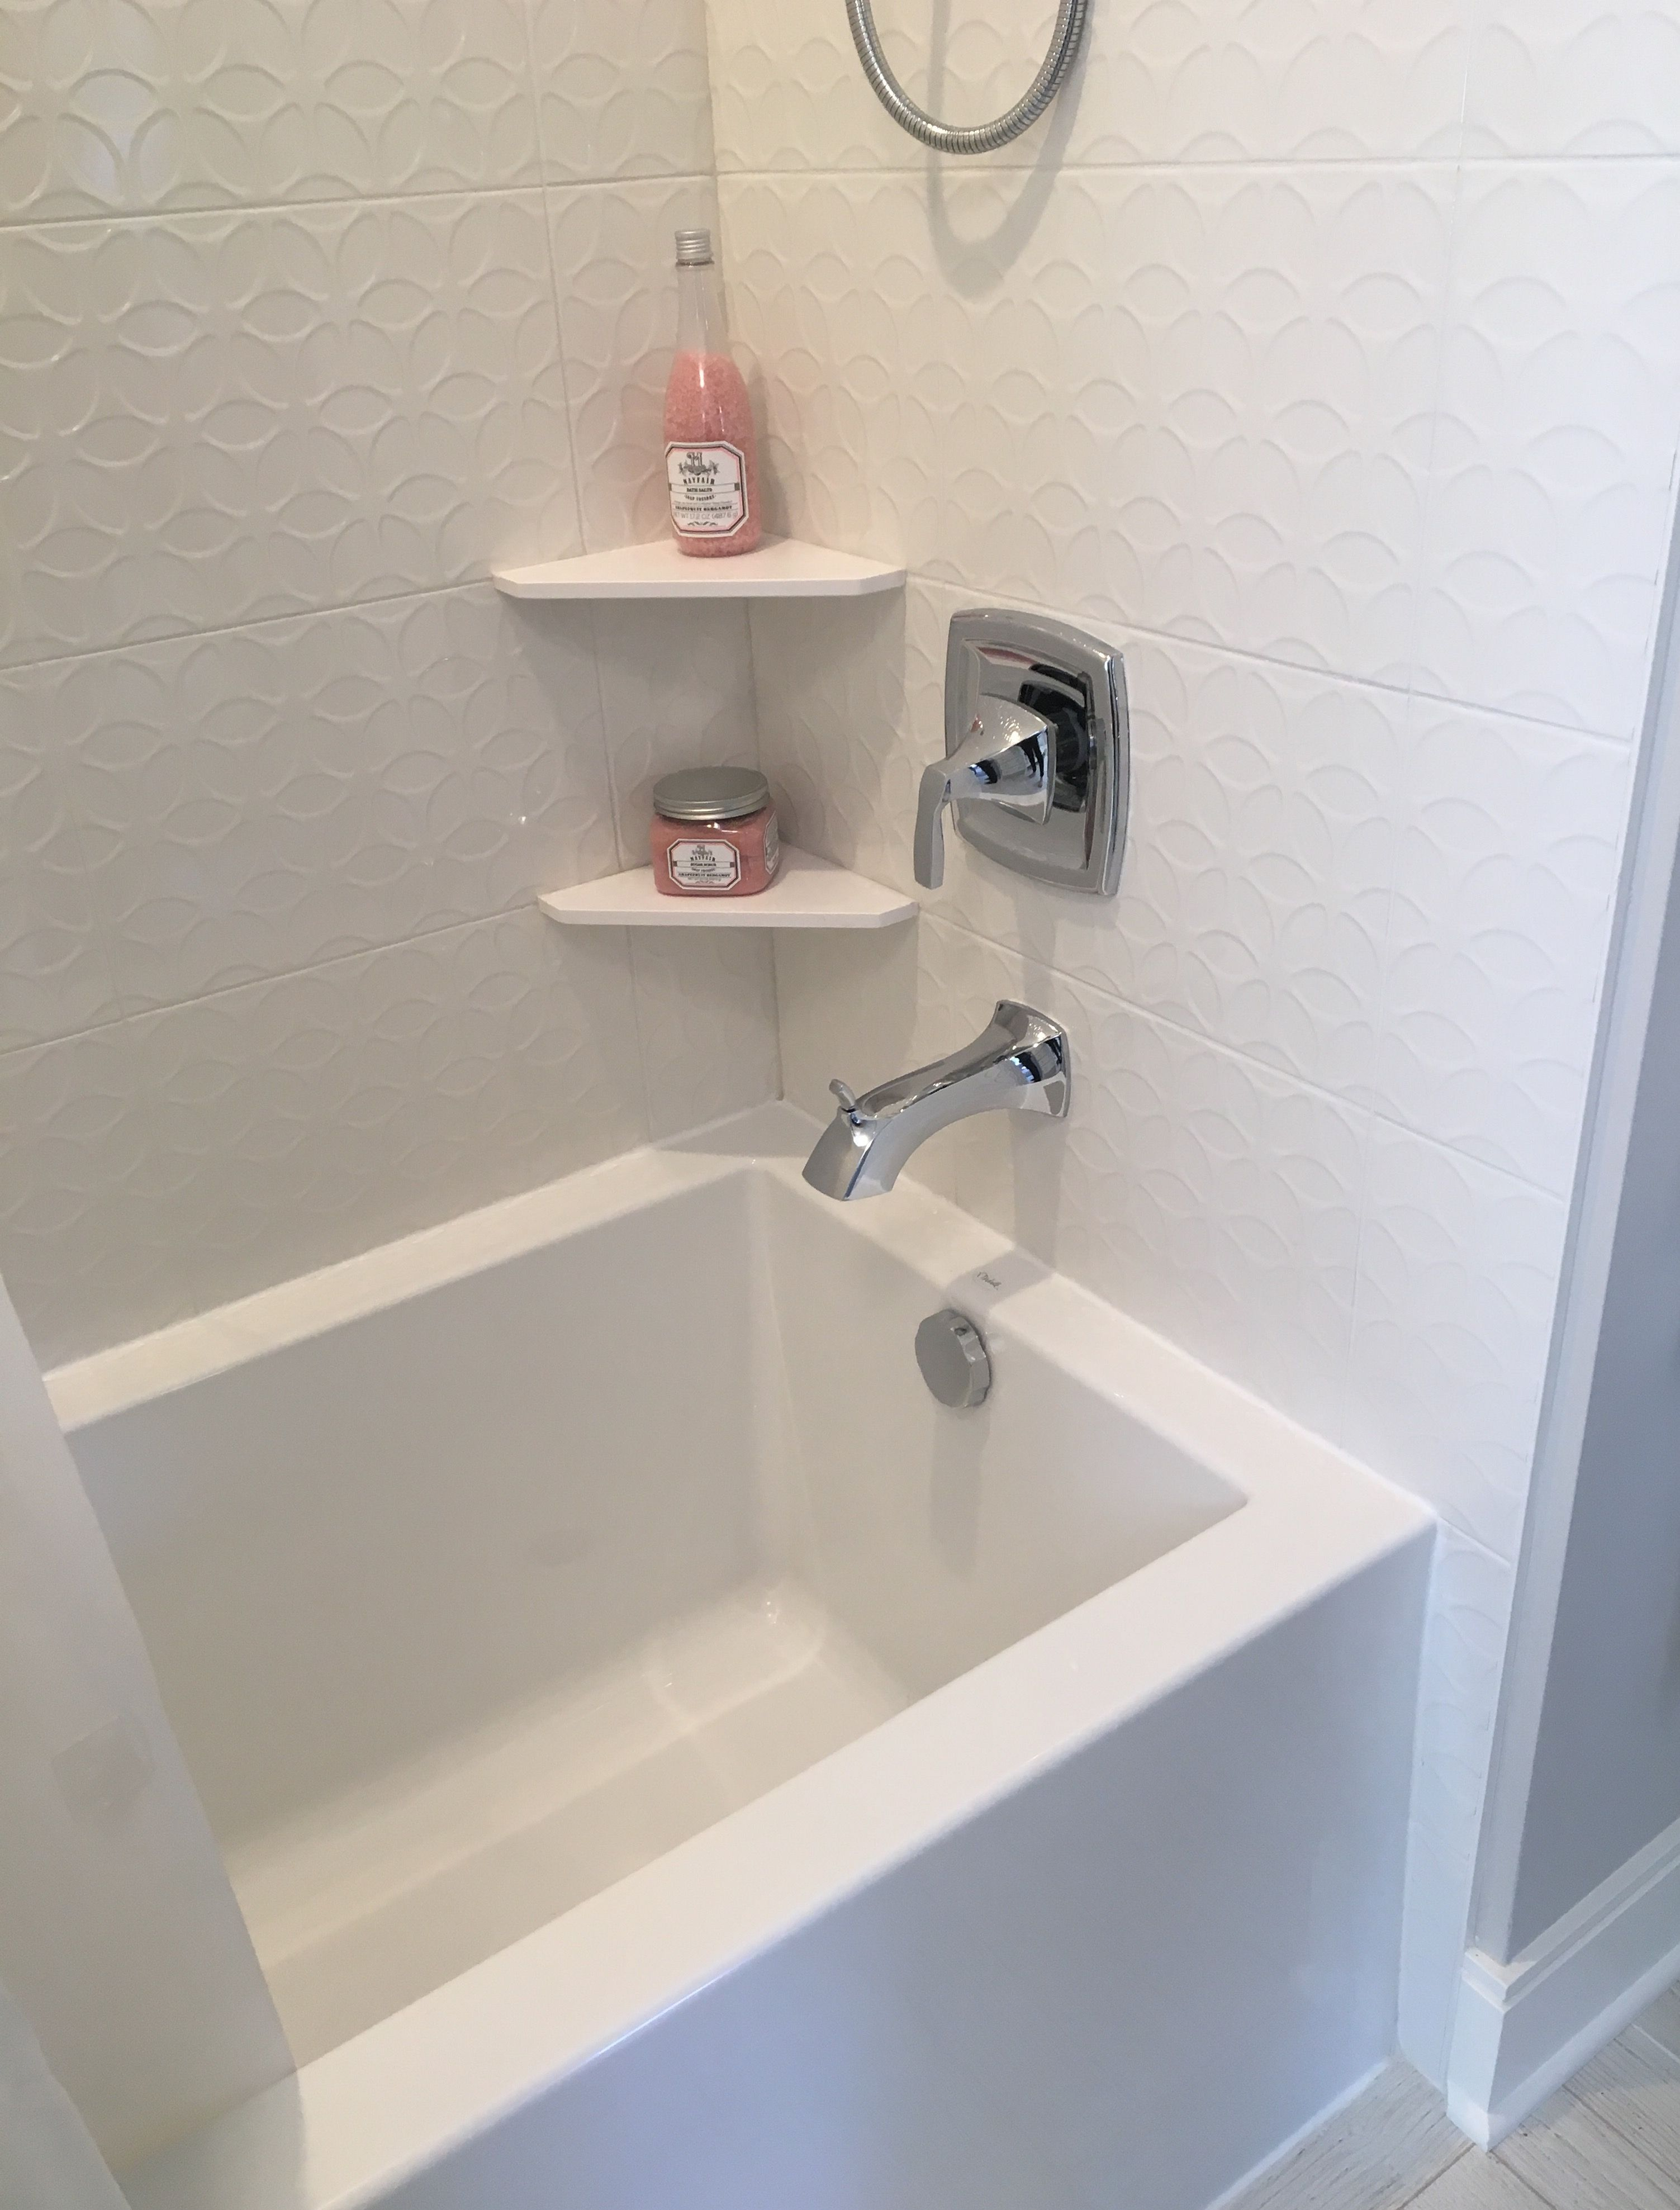 Square bathtub edge + tile and trim transition on wall | Bathroom ...